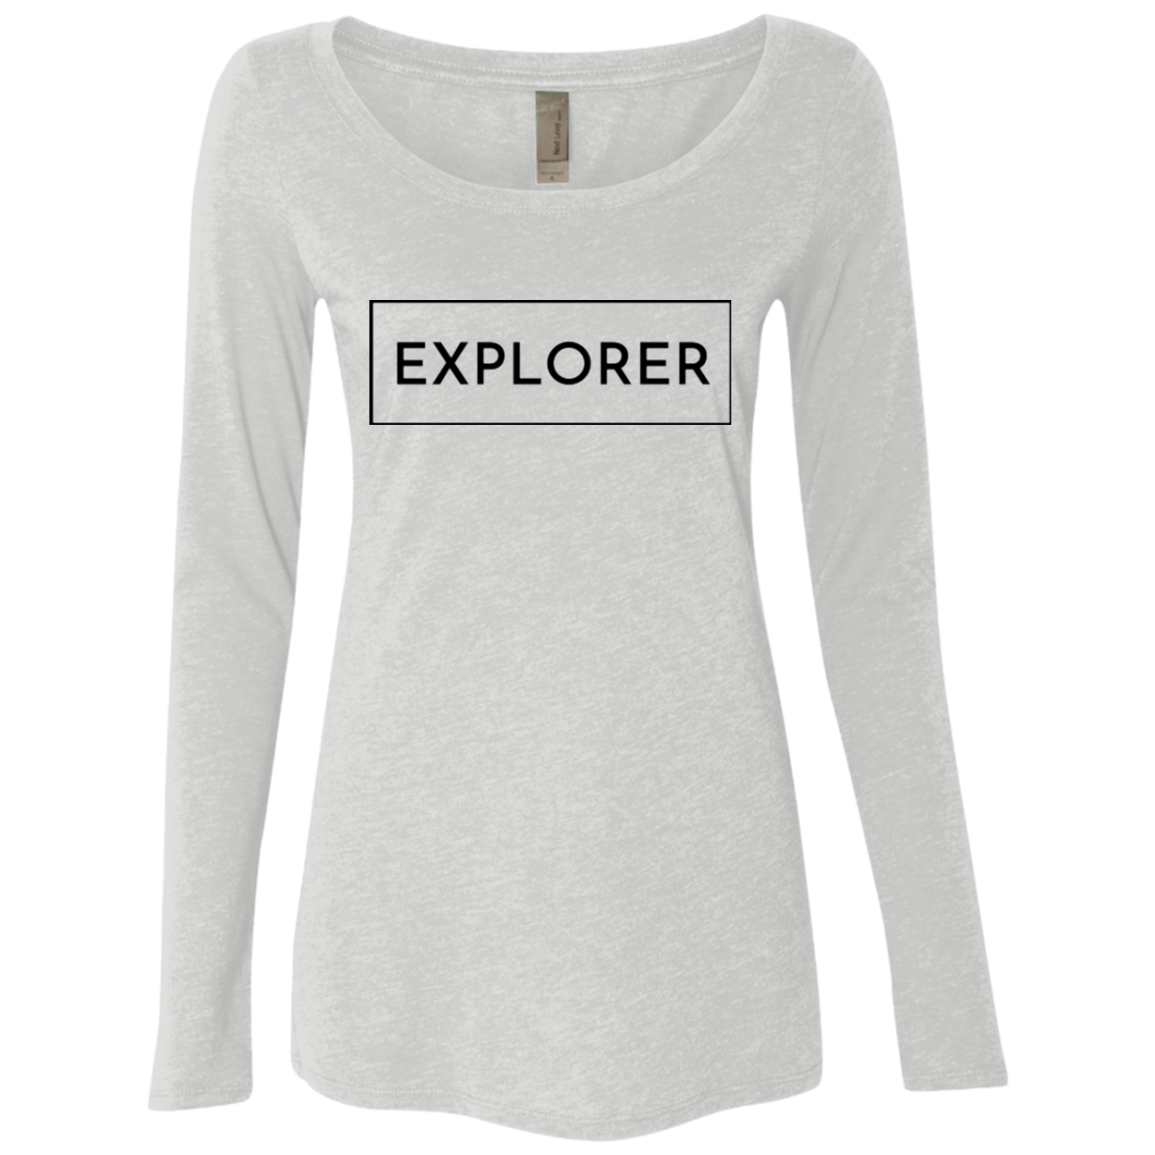 Explorer Women's Long Sleeve Tee - Trendy Tees